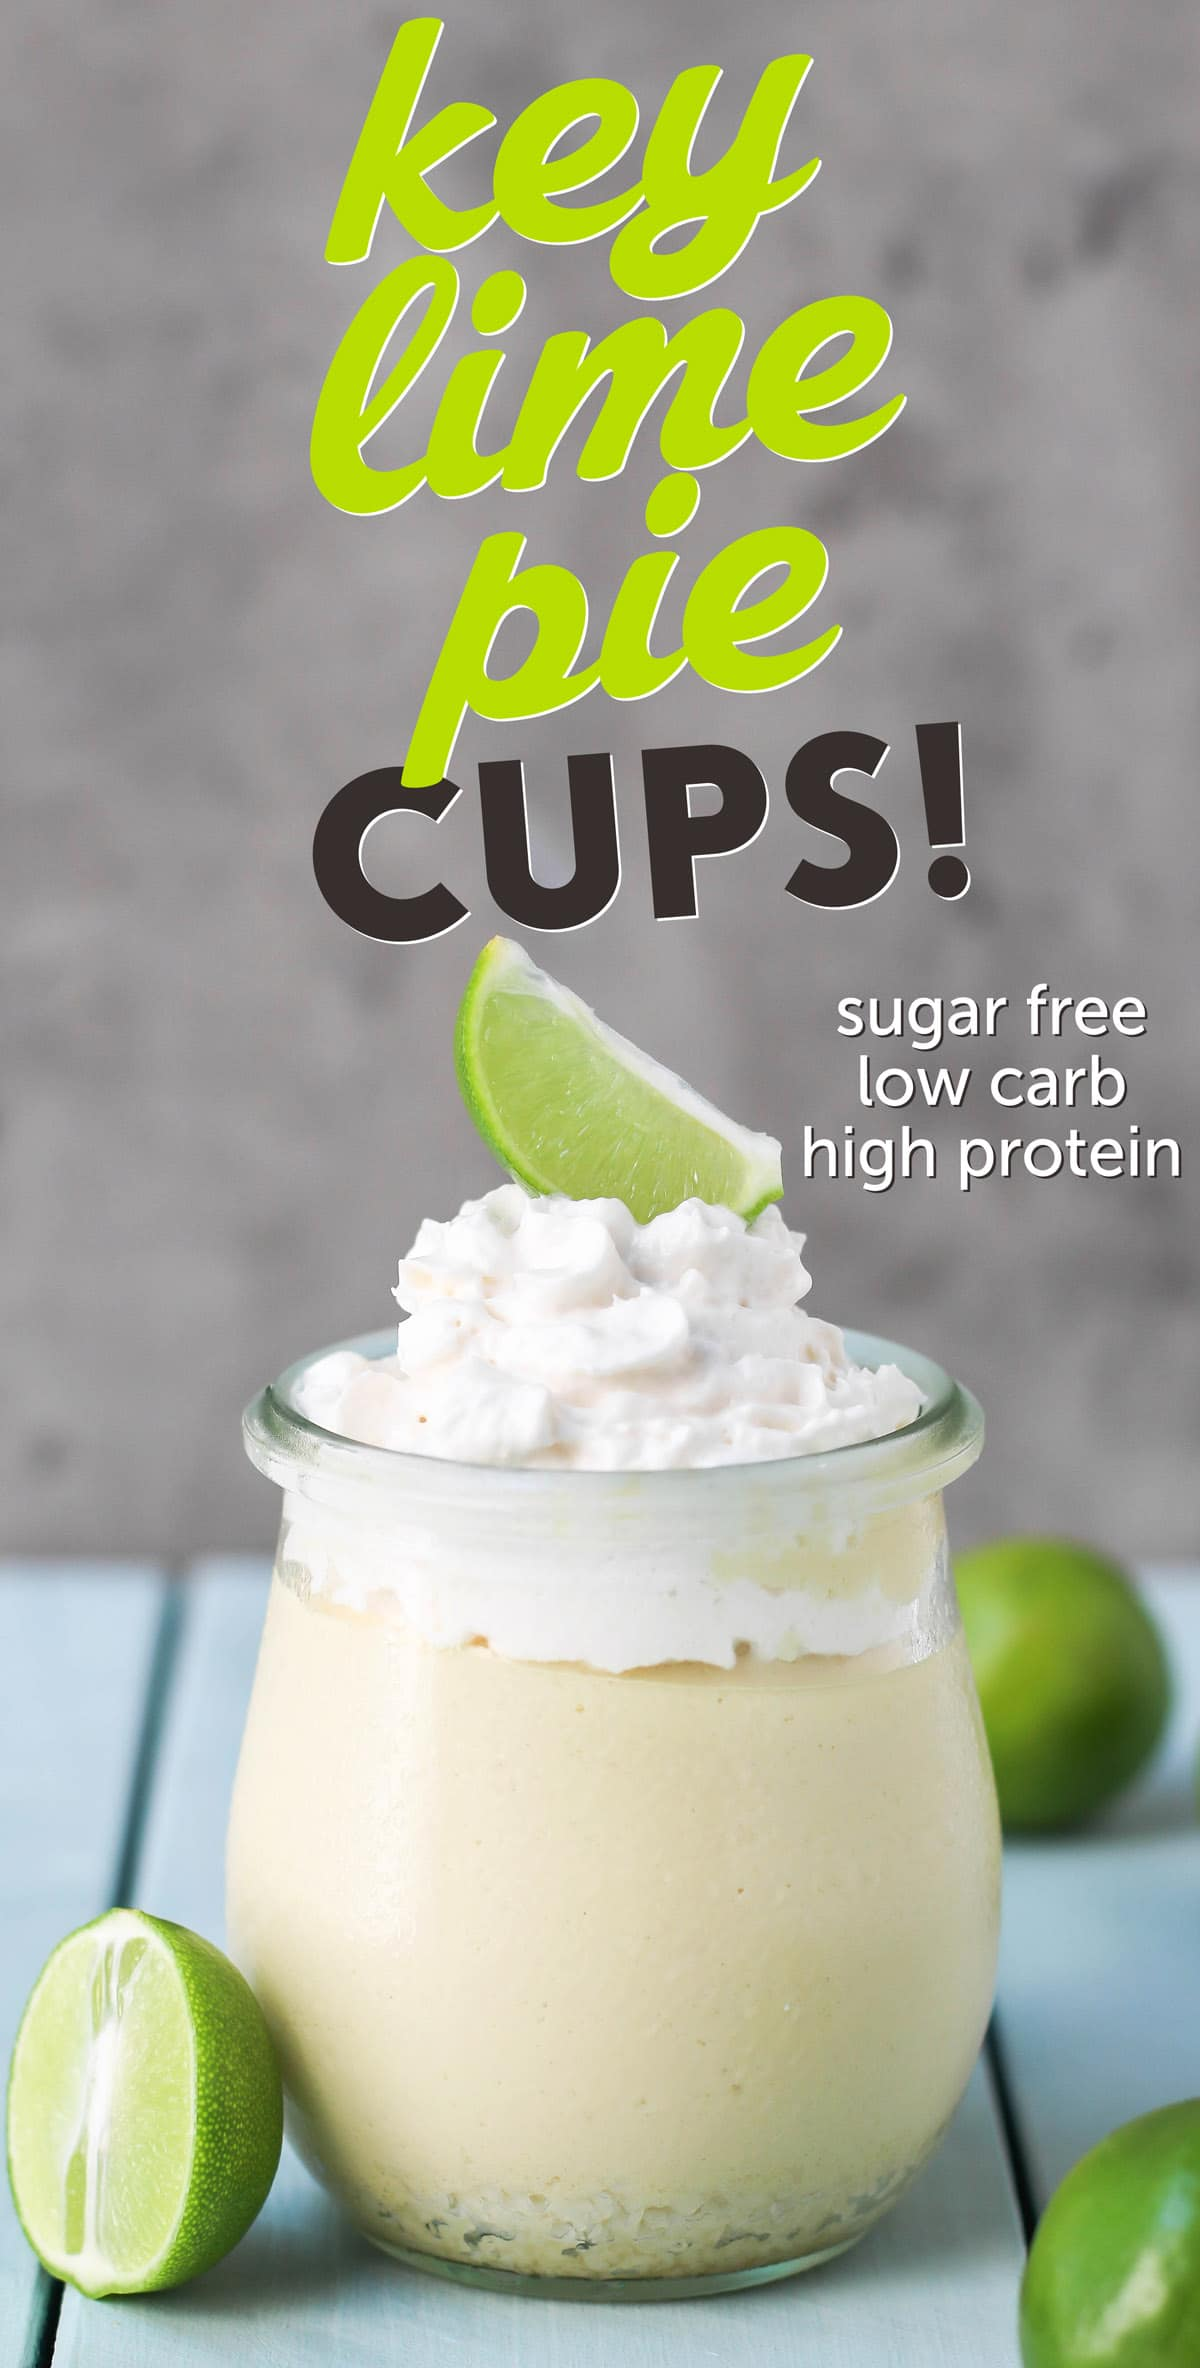 Healthy Key Lime Pie Cups - sugar free, low carb, high protein, gluten free